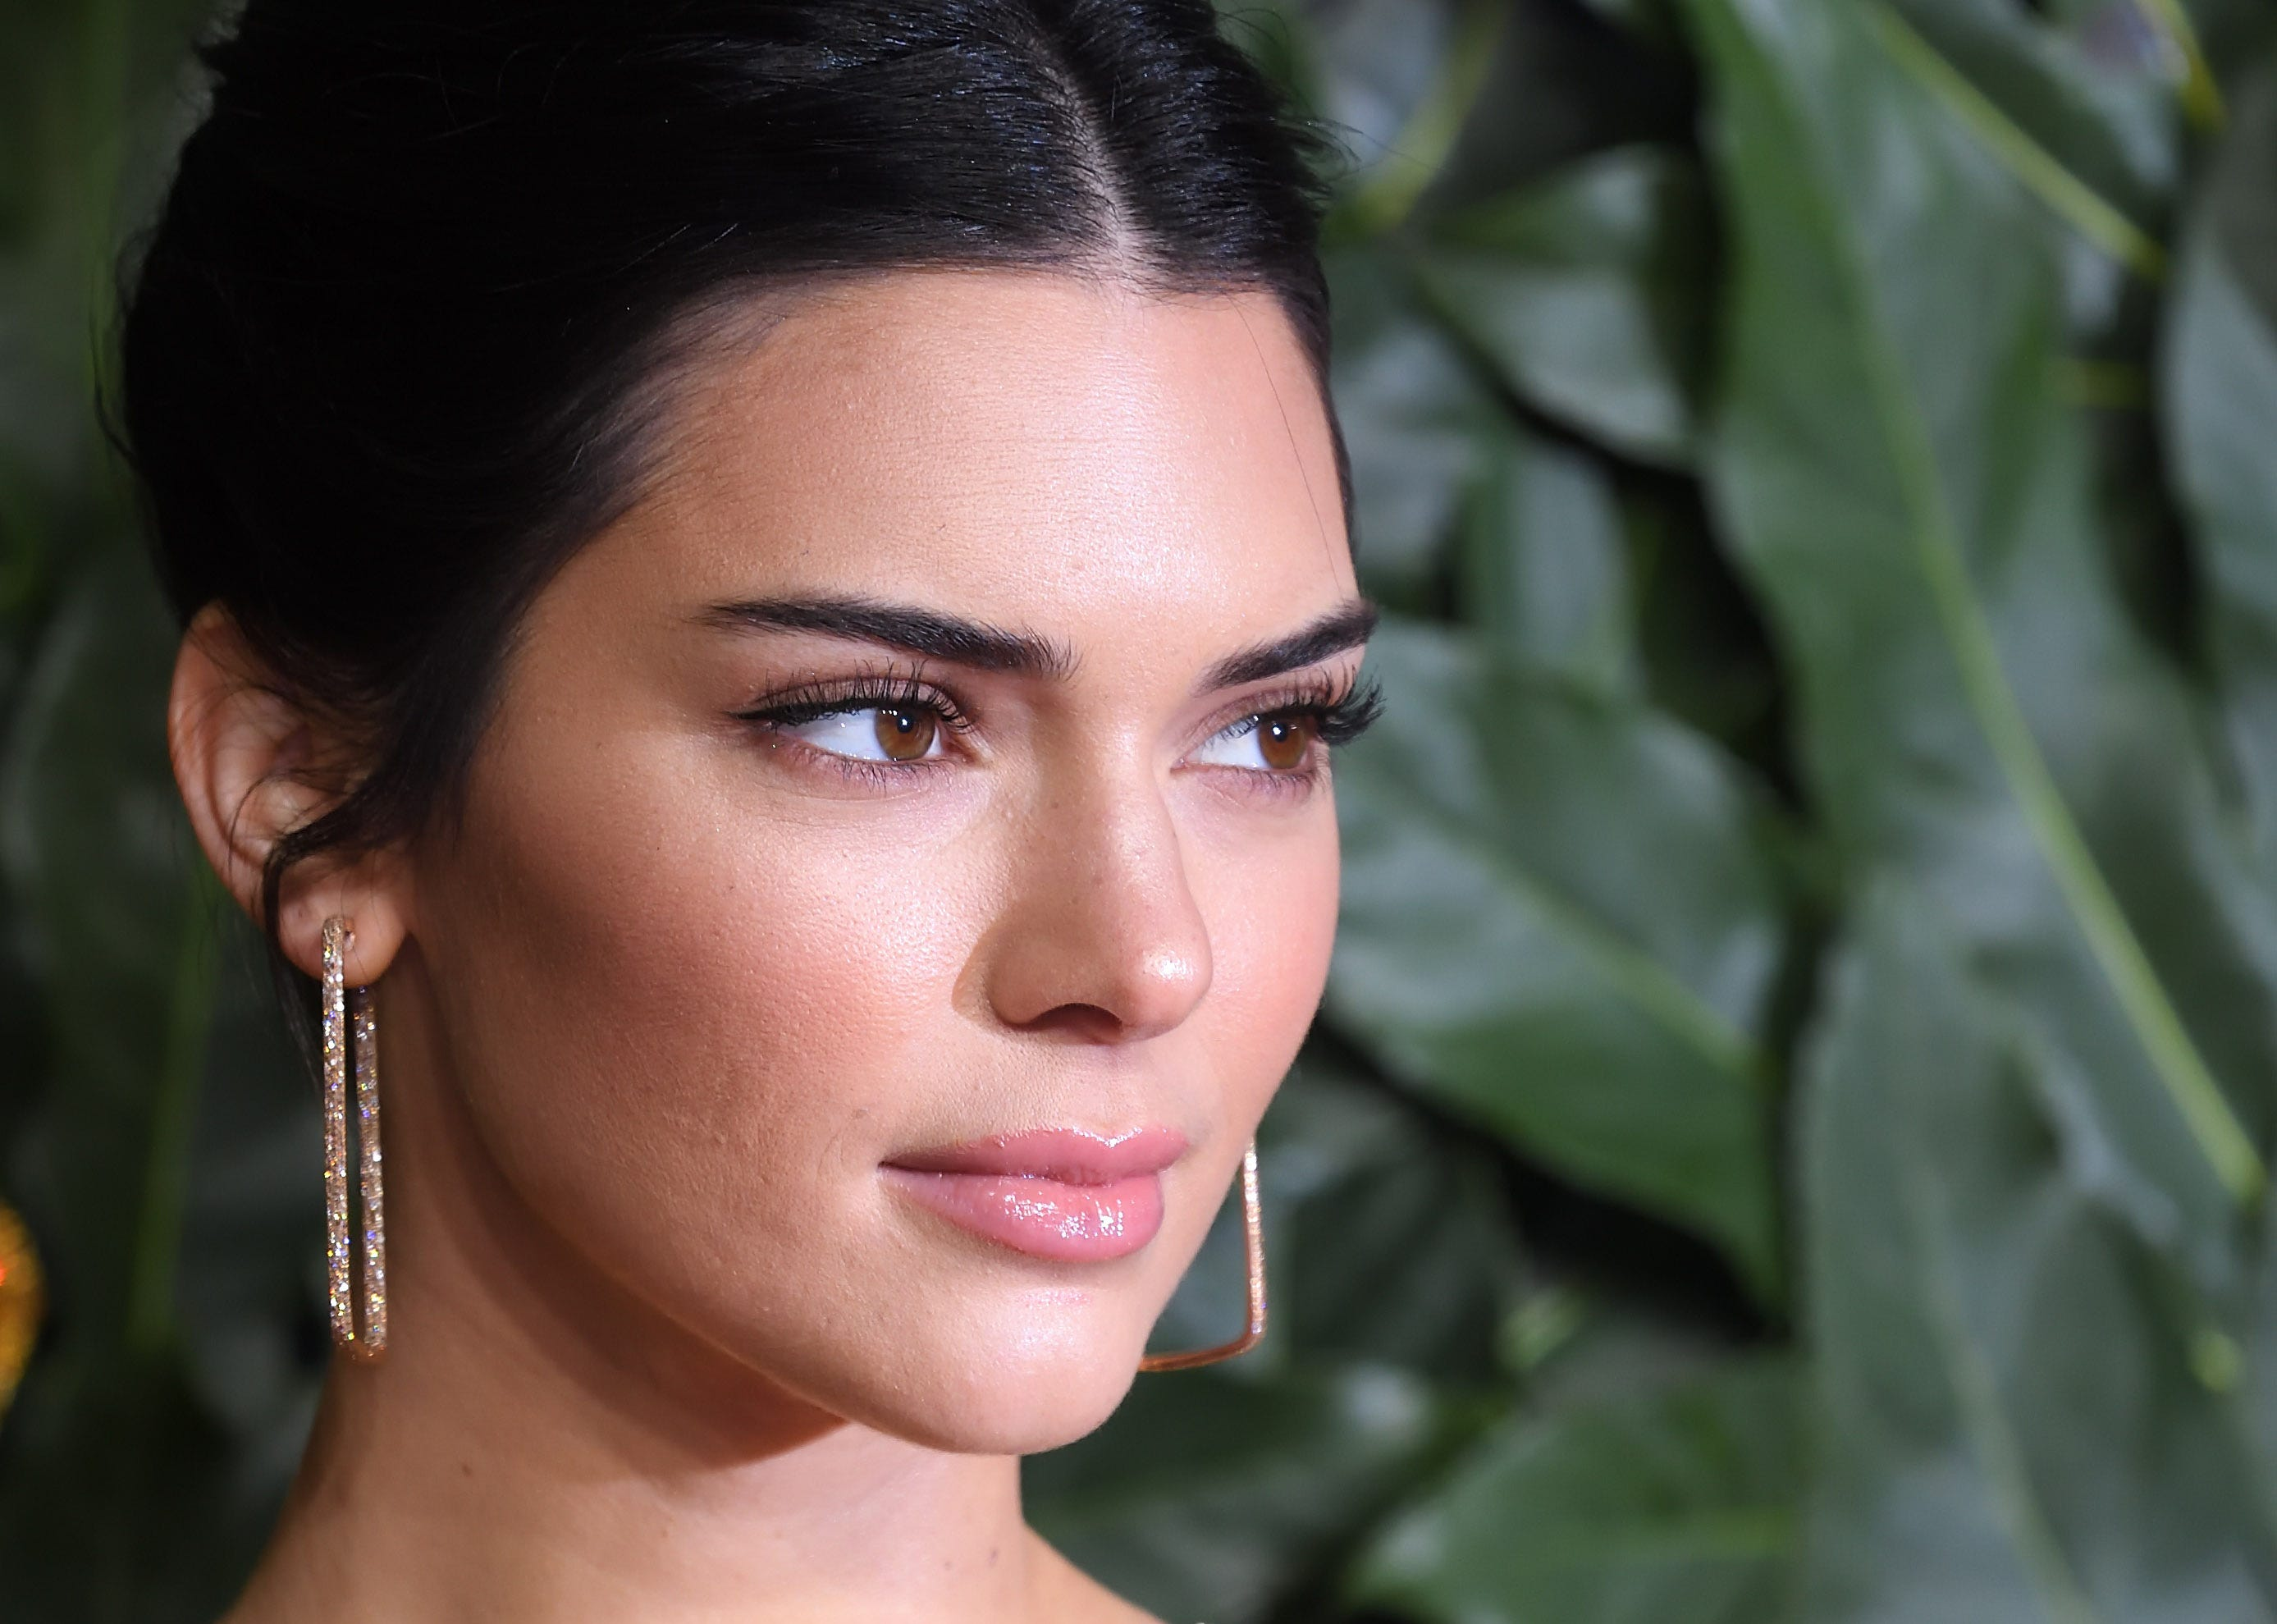 Here's where bikini-clad Kendall Jenner and other stars are vacationing for the holidays